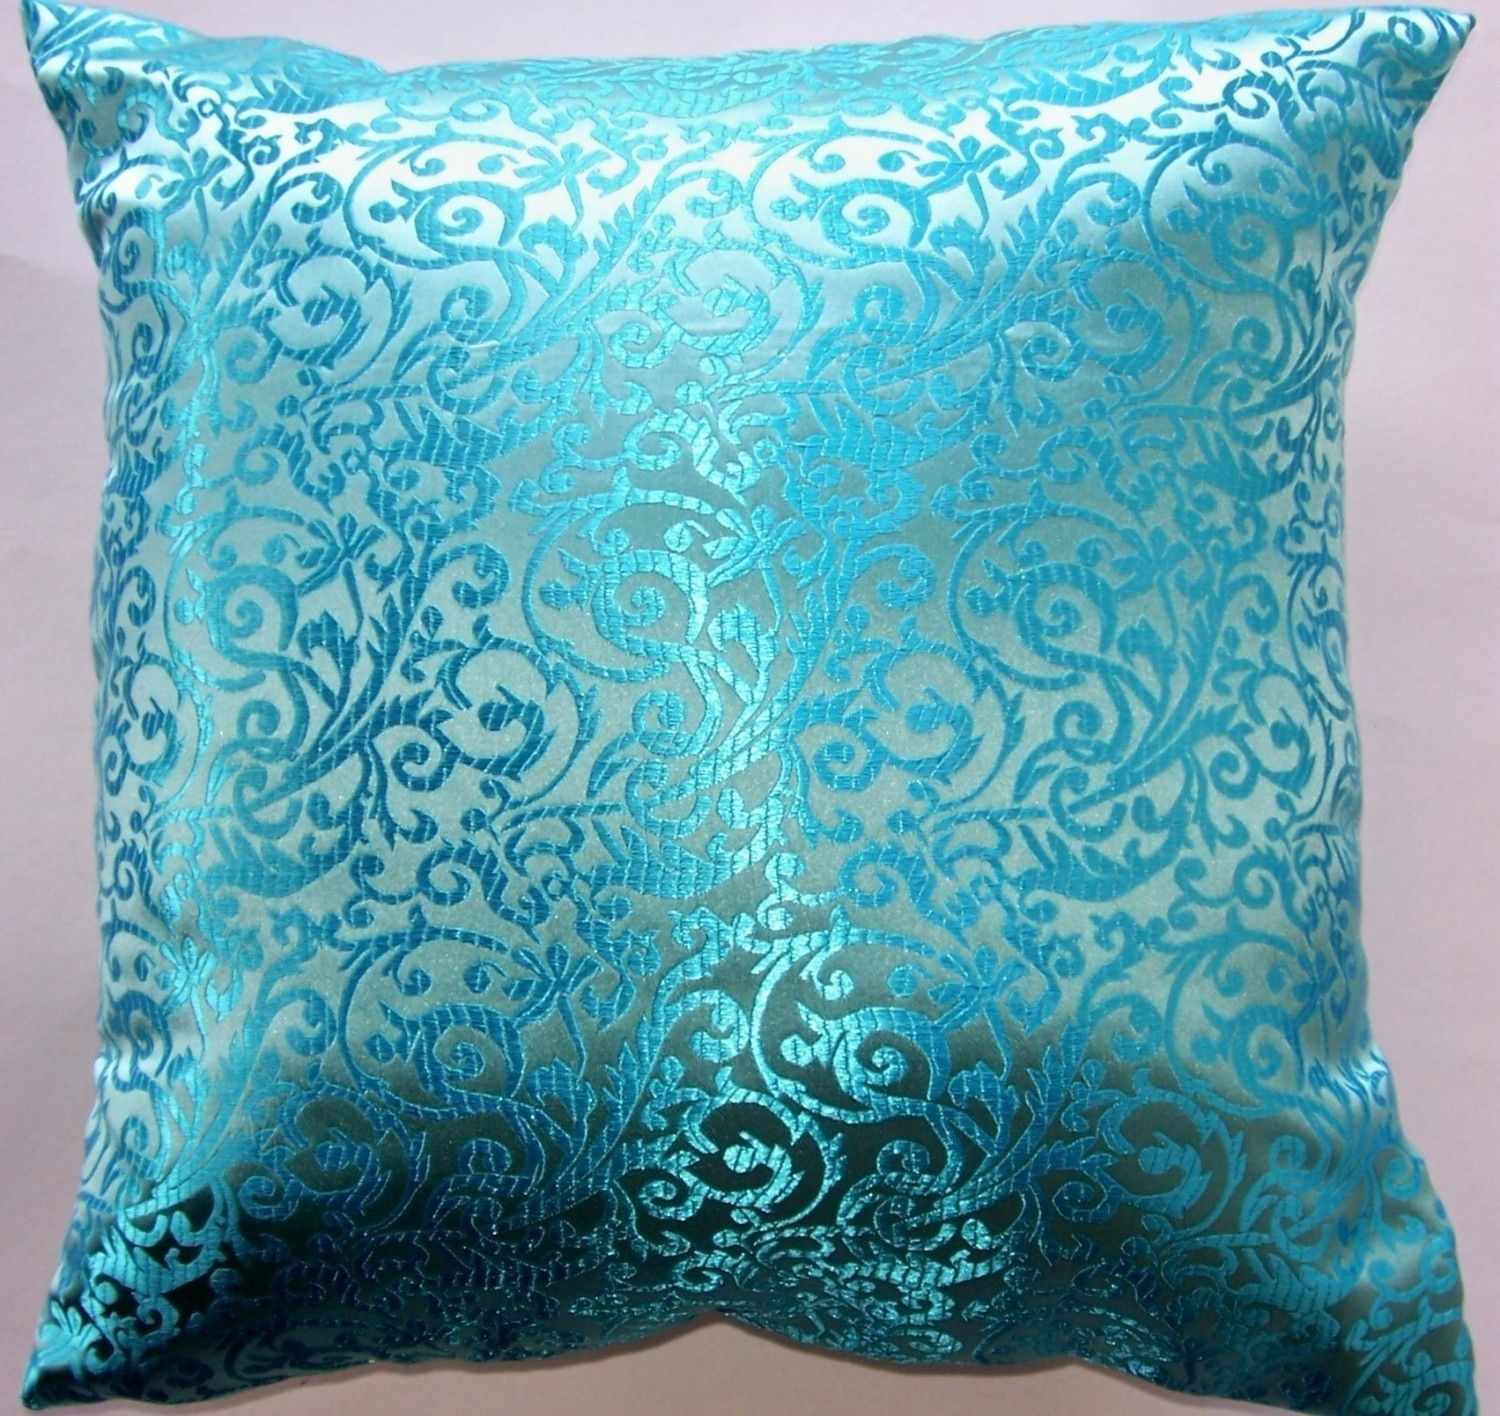 Turquoise Throw Pillow Cover Satin Brocade By Sassypillows 19 99 Turquoise Throw Pillows Turquoise Couch Pillows Turquoise Throw Pillow Covers